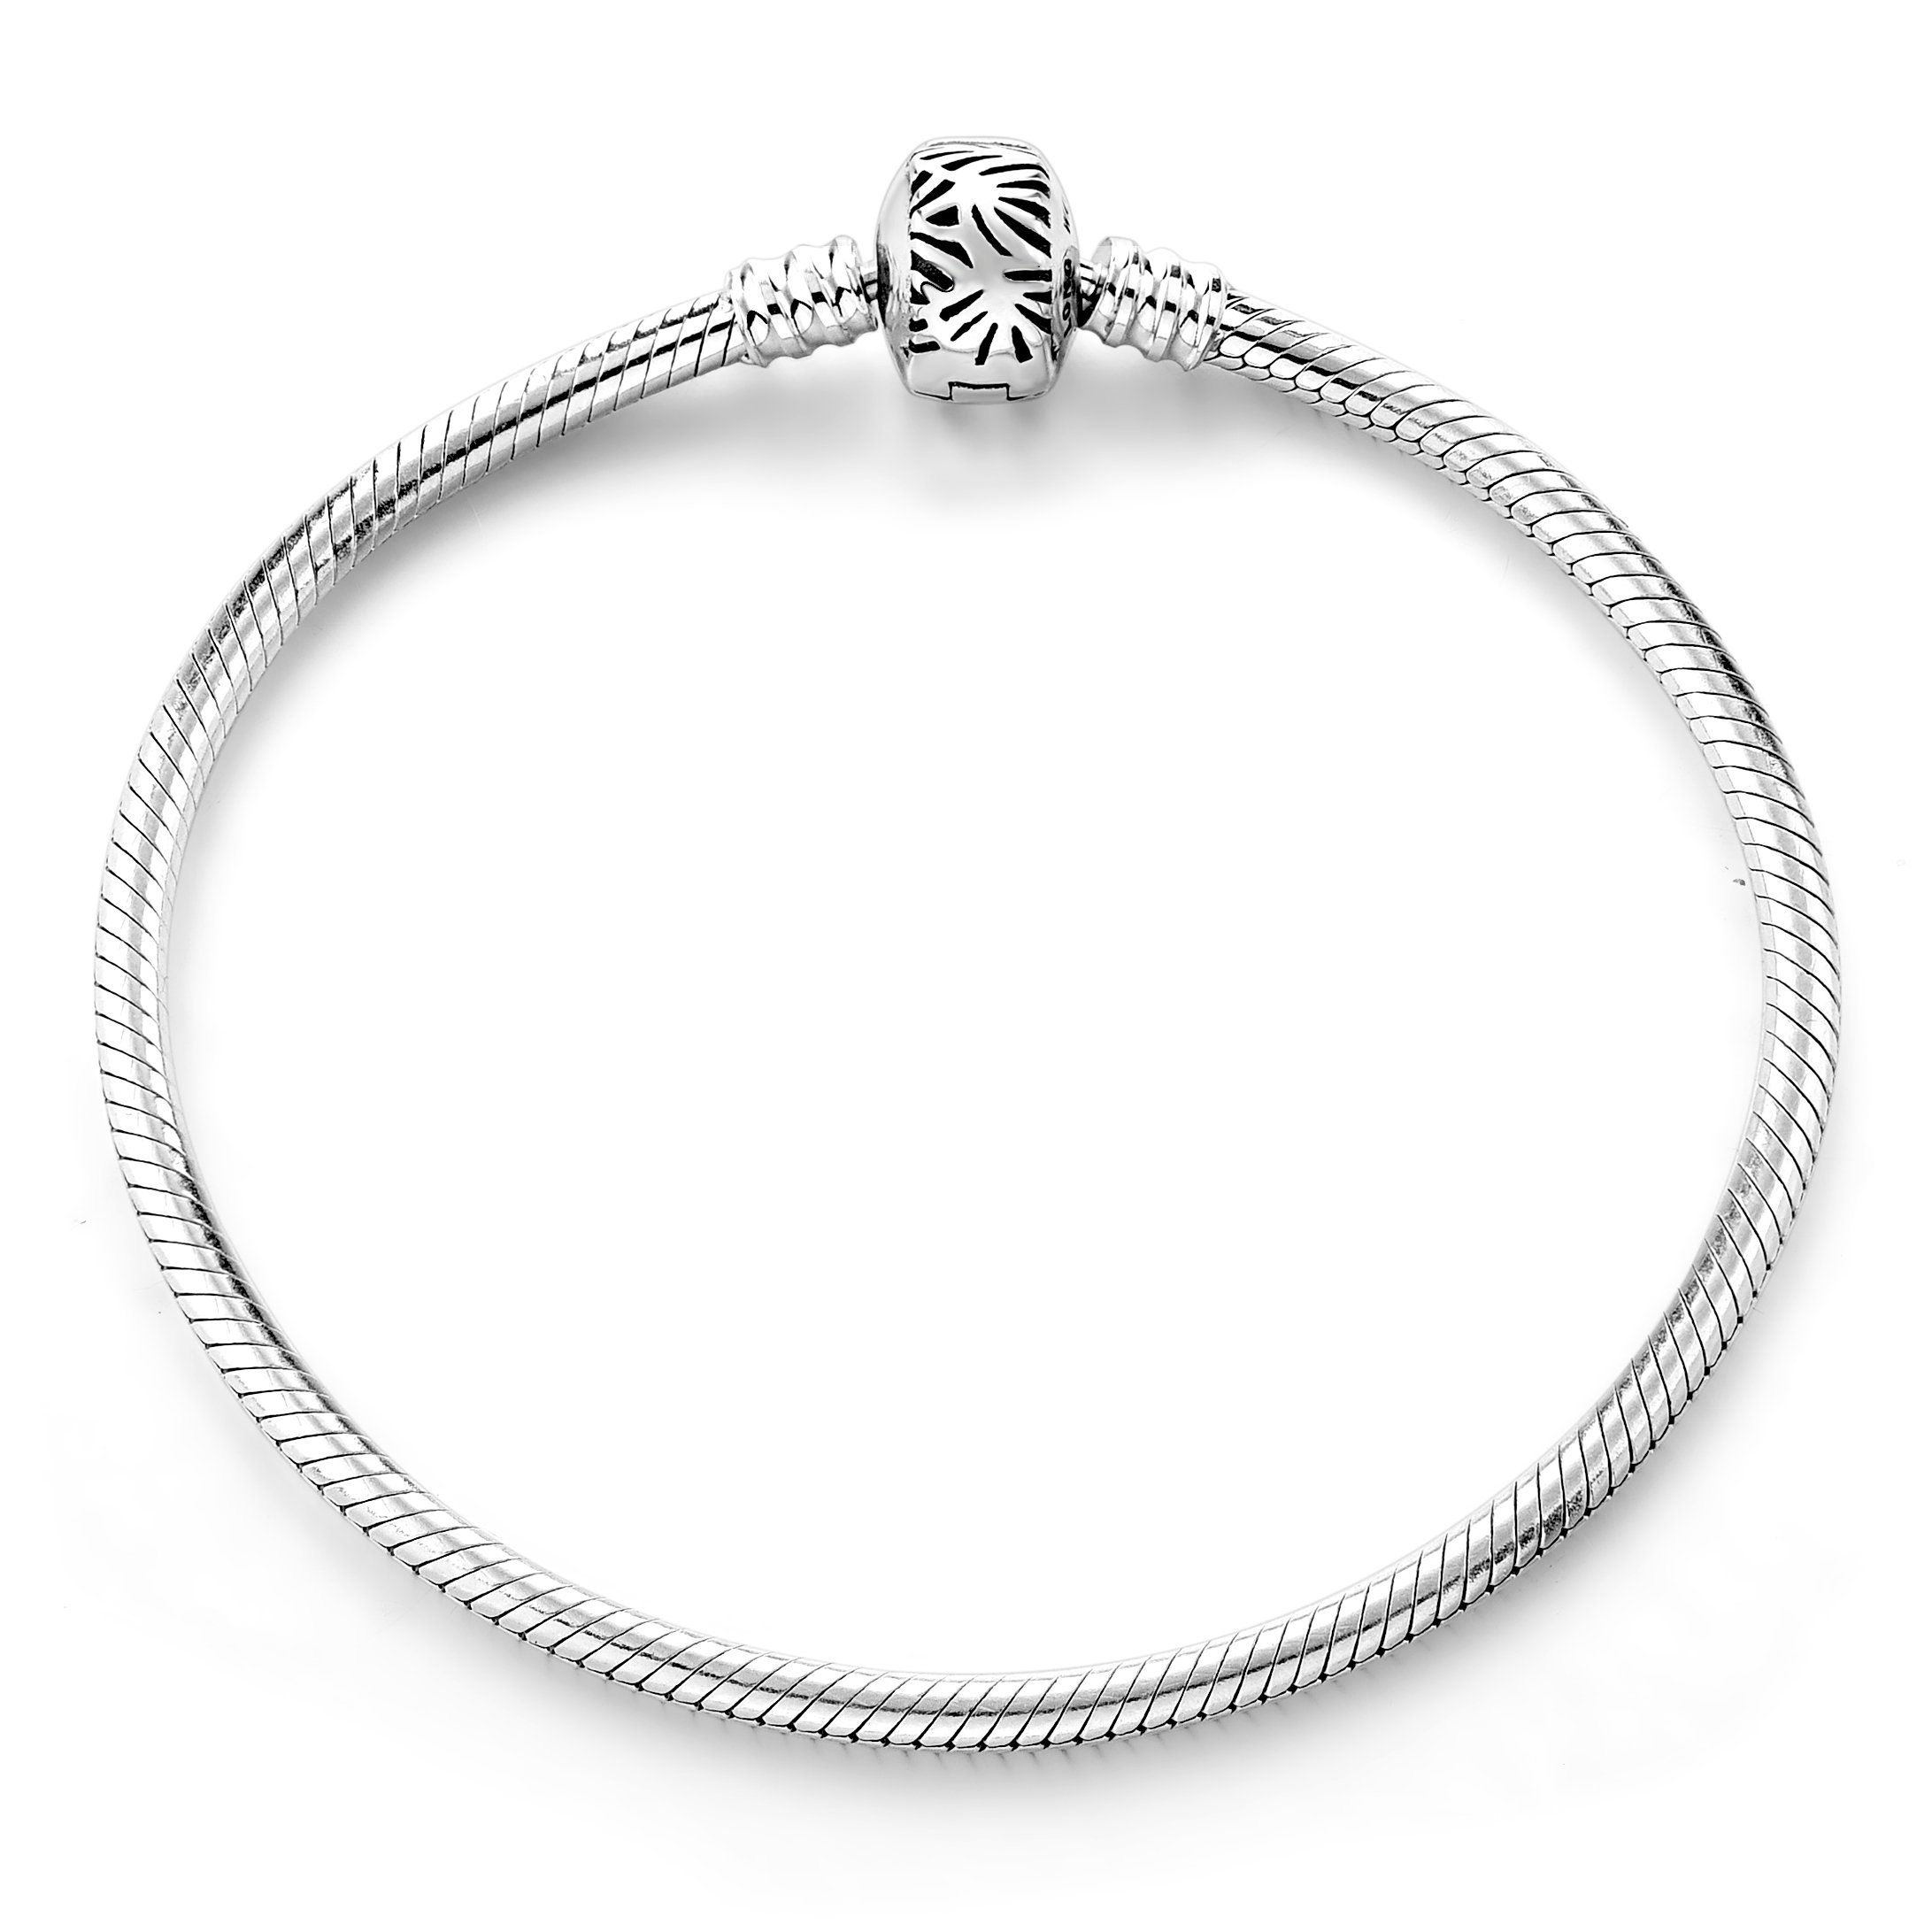 Bracelet,925 Sterling Silver Basic Charm Bracelet Snake Chain Long Way Fine Jewelry for Women, Best Christmas Birthday Gift for Mother Wife Girlfriend (Silver 7.5inches)